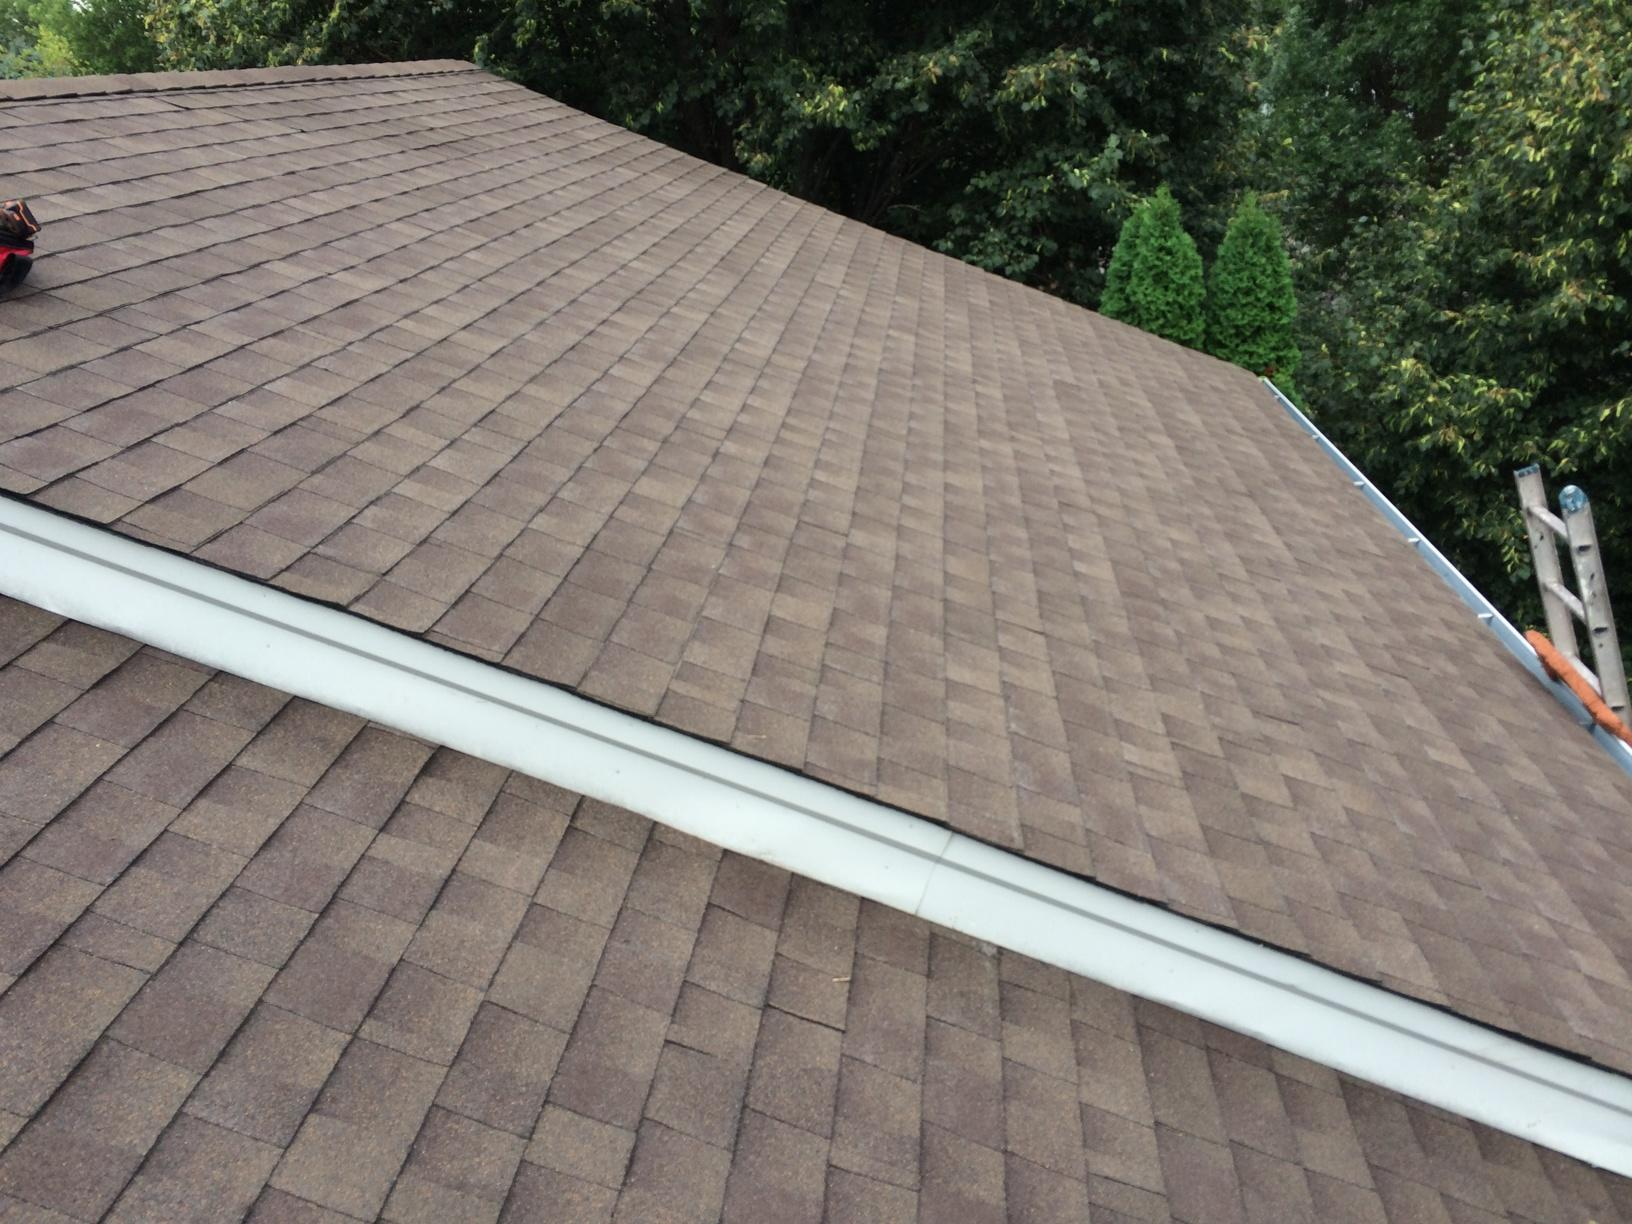 Newly installed GAF Brand shingles. Timberline Natural Shadow, Barkwood color.